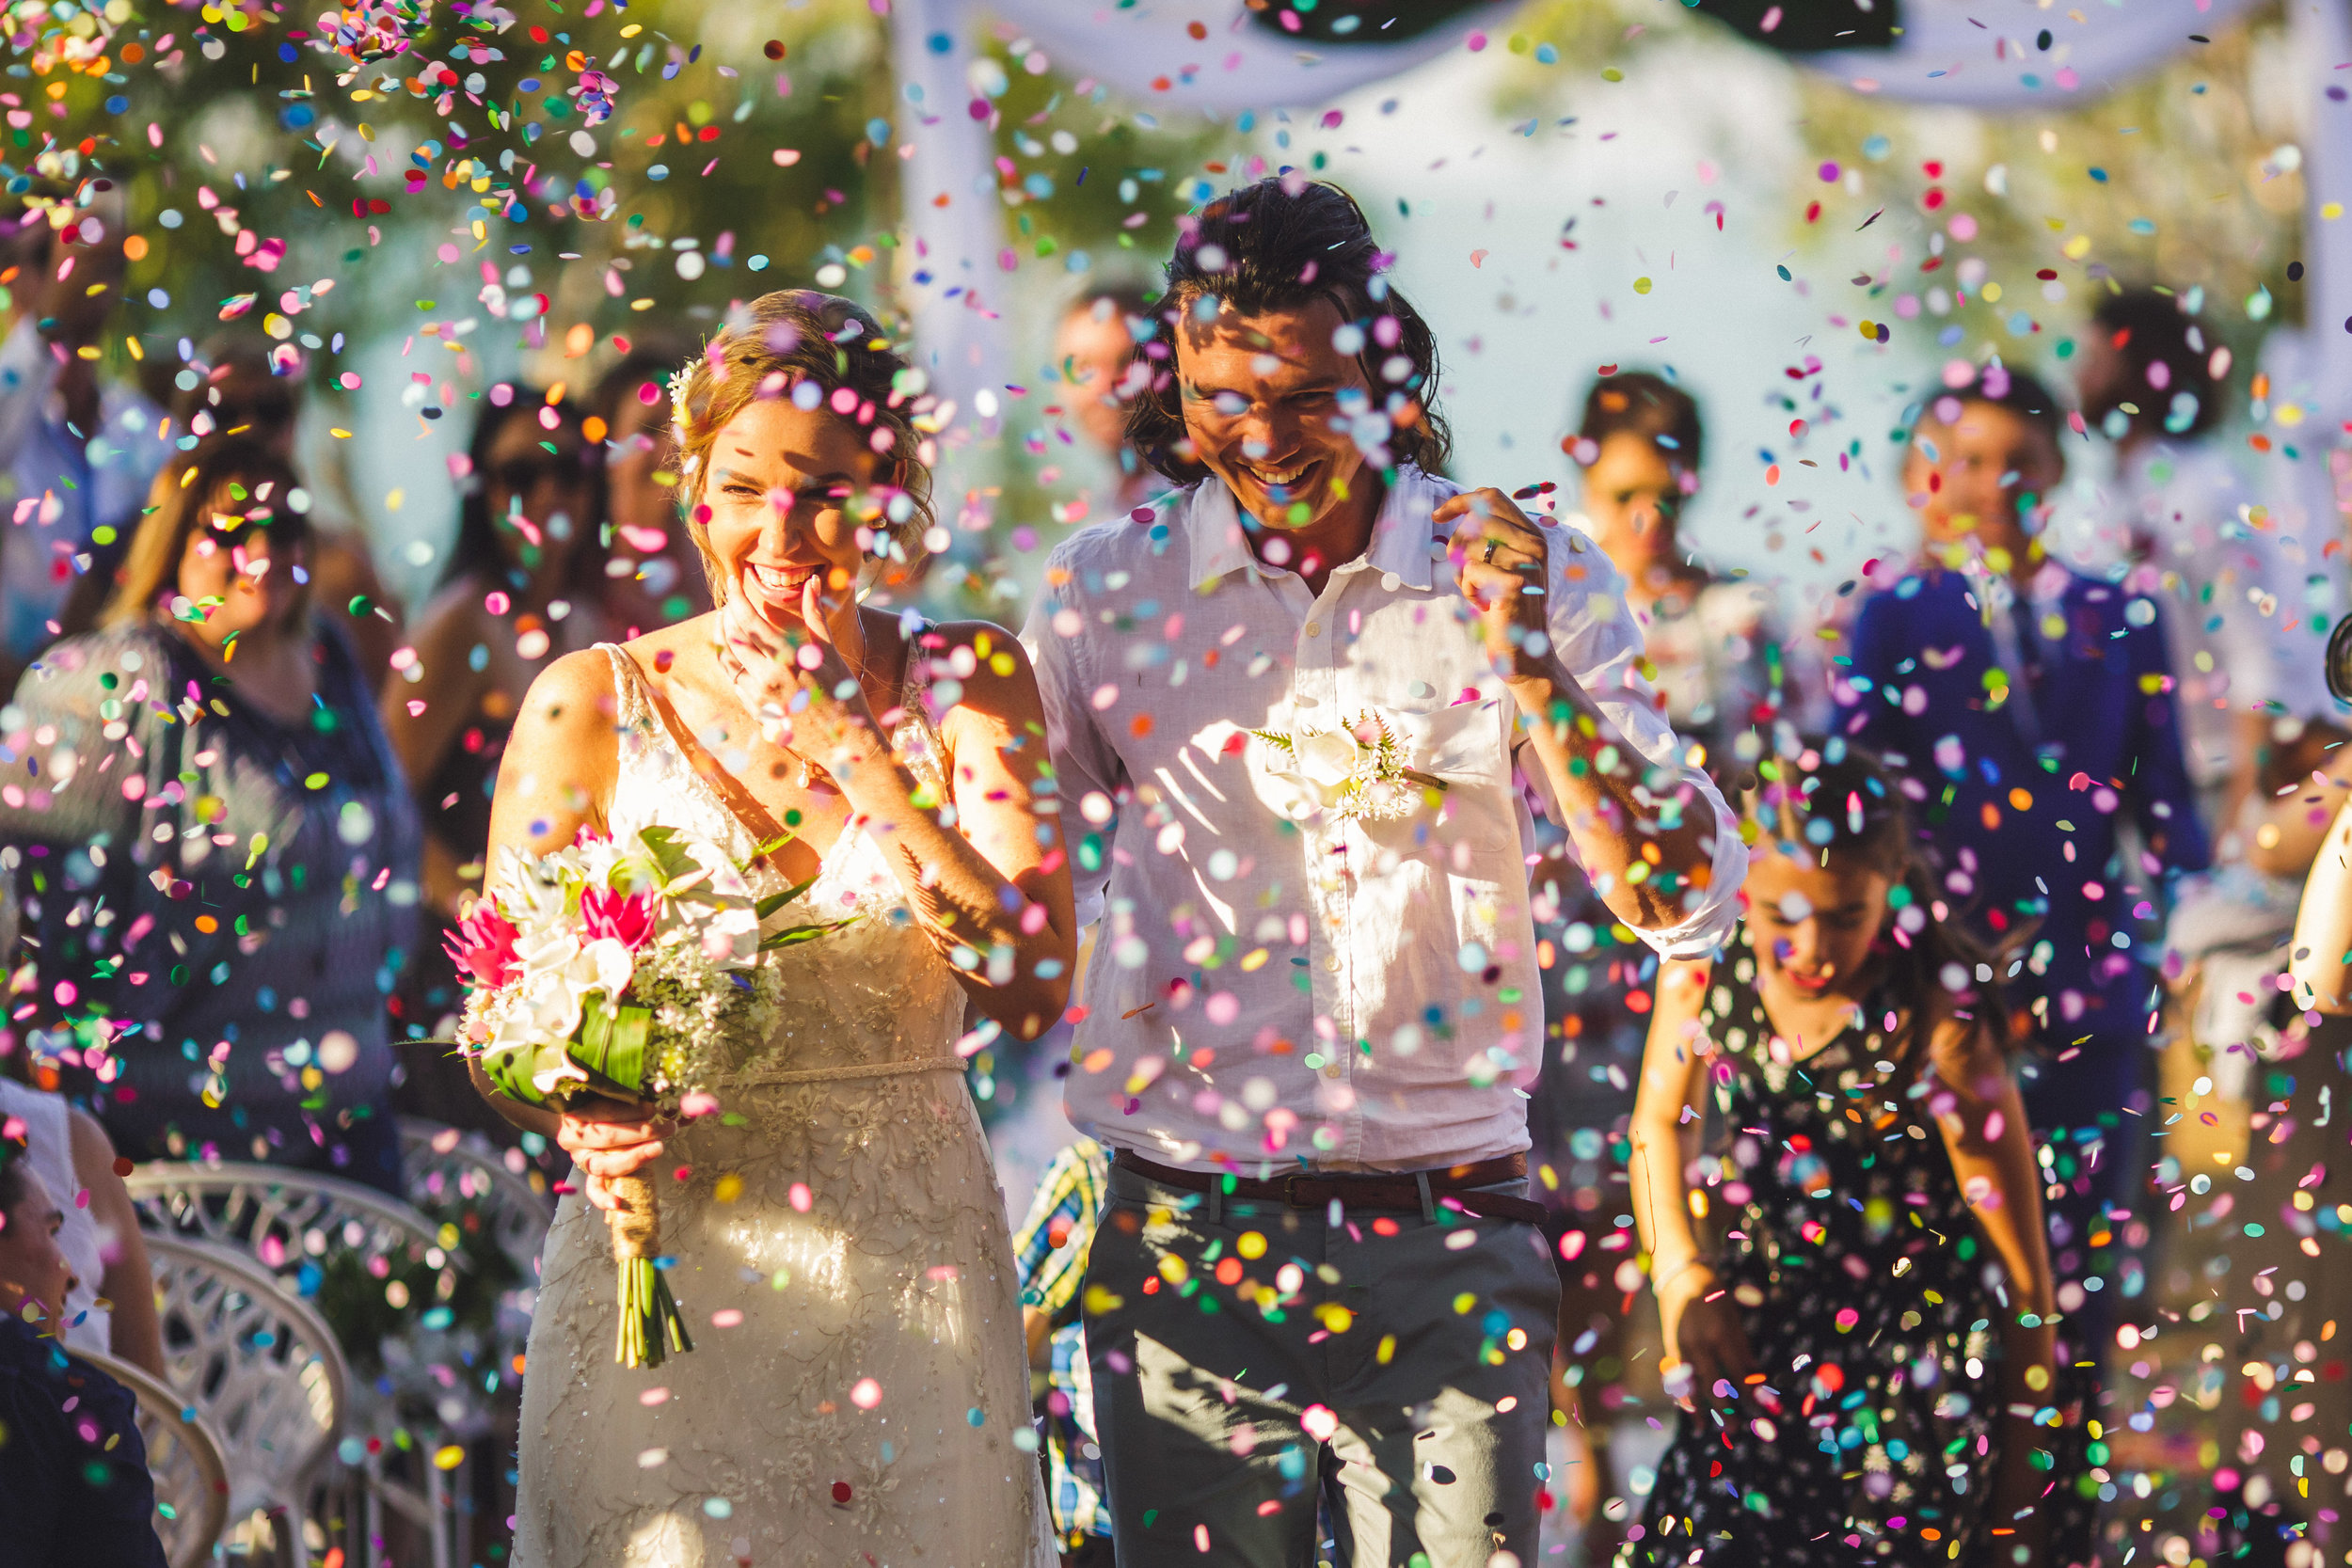 Bride and Groom just married with lots of confetti